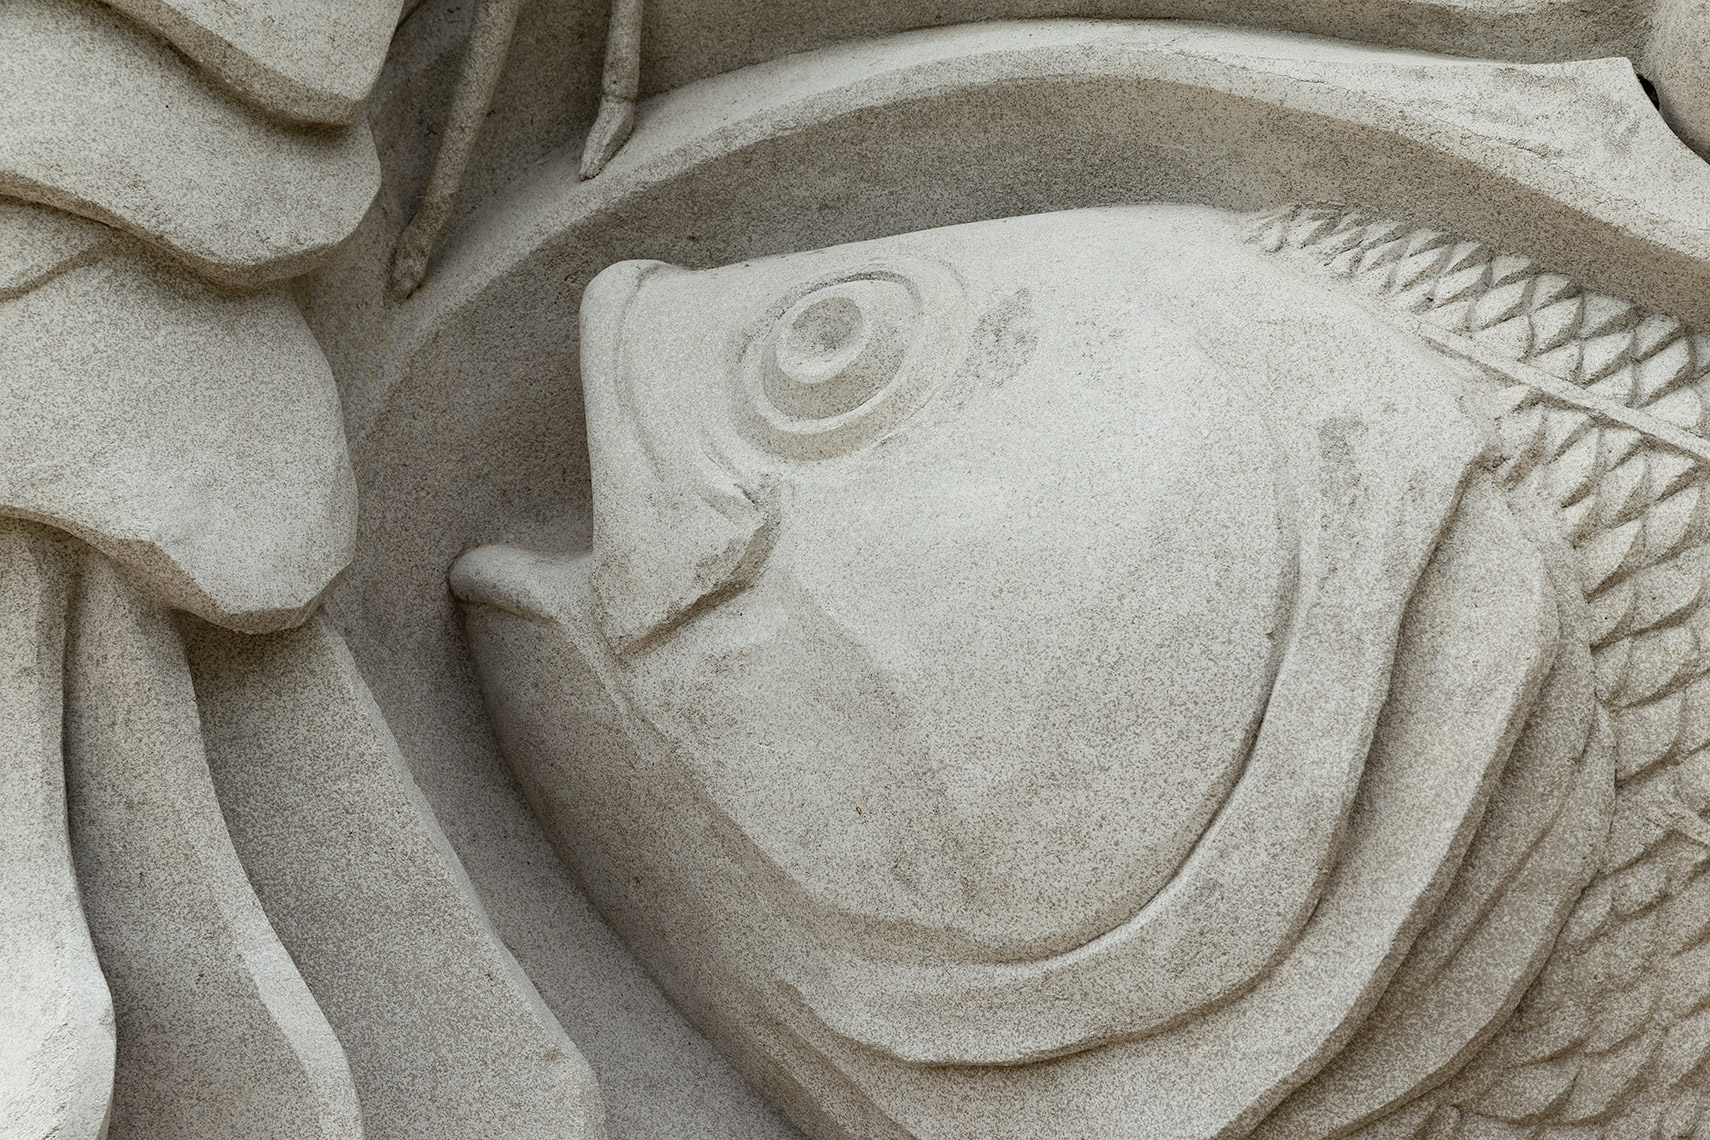 fish artwork detail on spring giant concrete sculpture at botanic garden